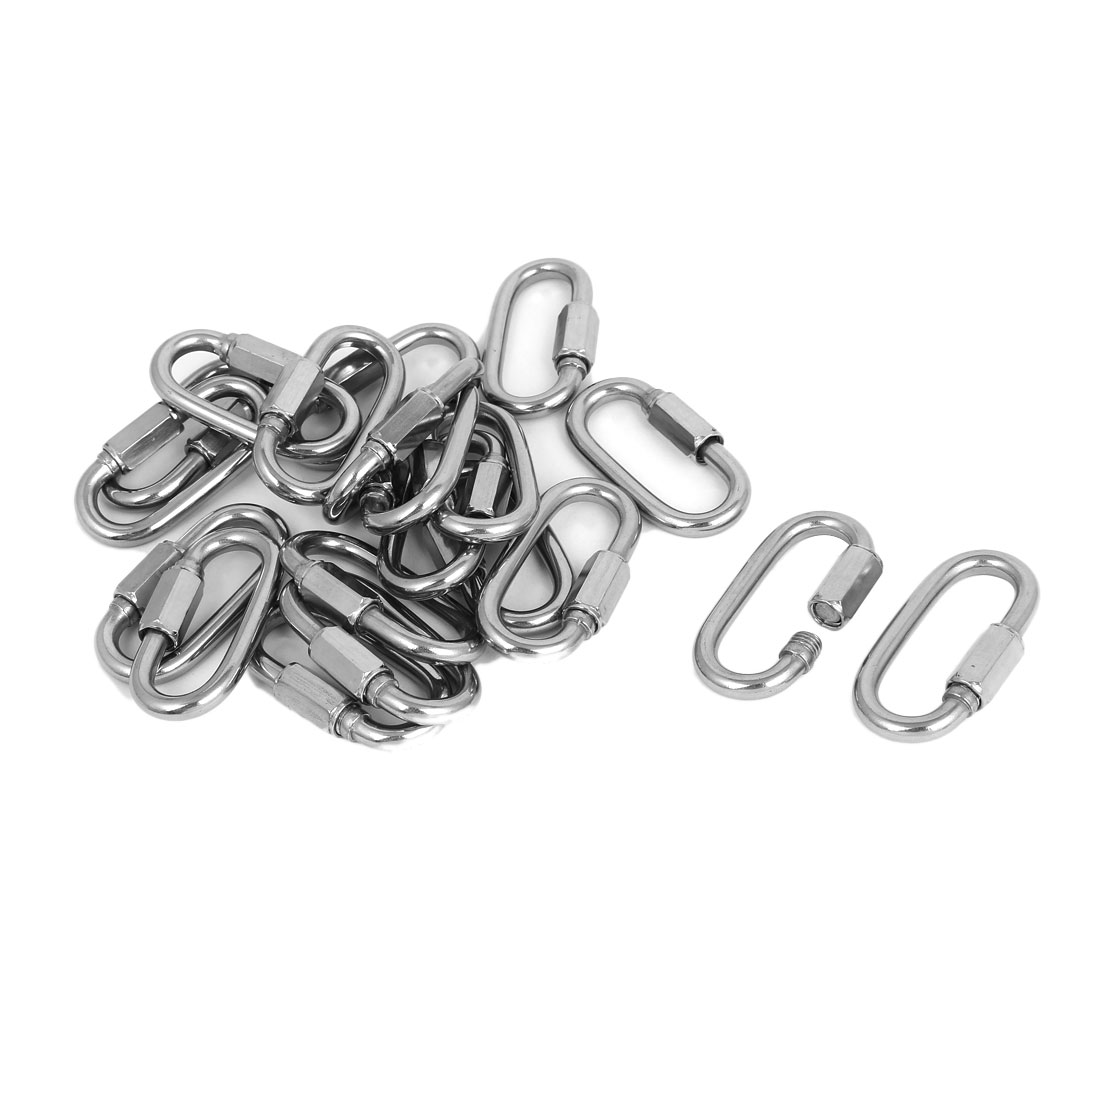 20pcs M6 Stainless Steel Hook Quick Link Chain Rope Cable Connector Silver Tone